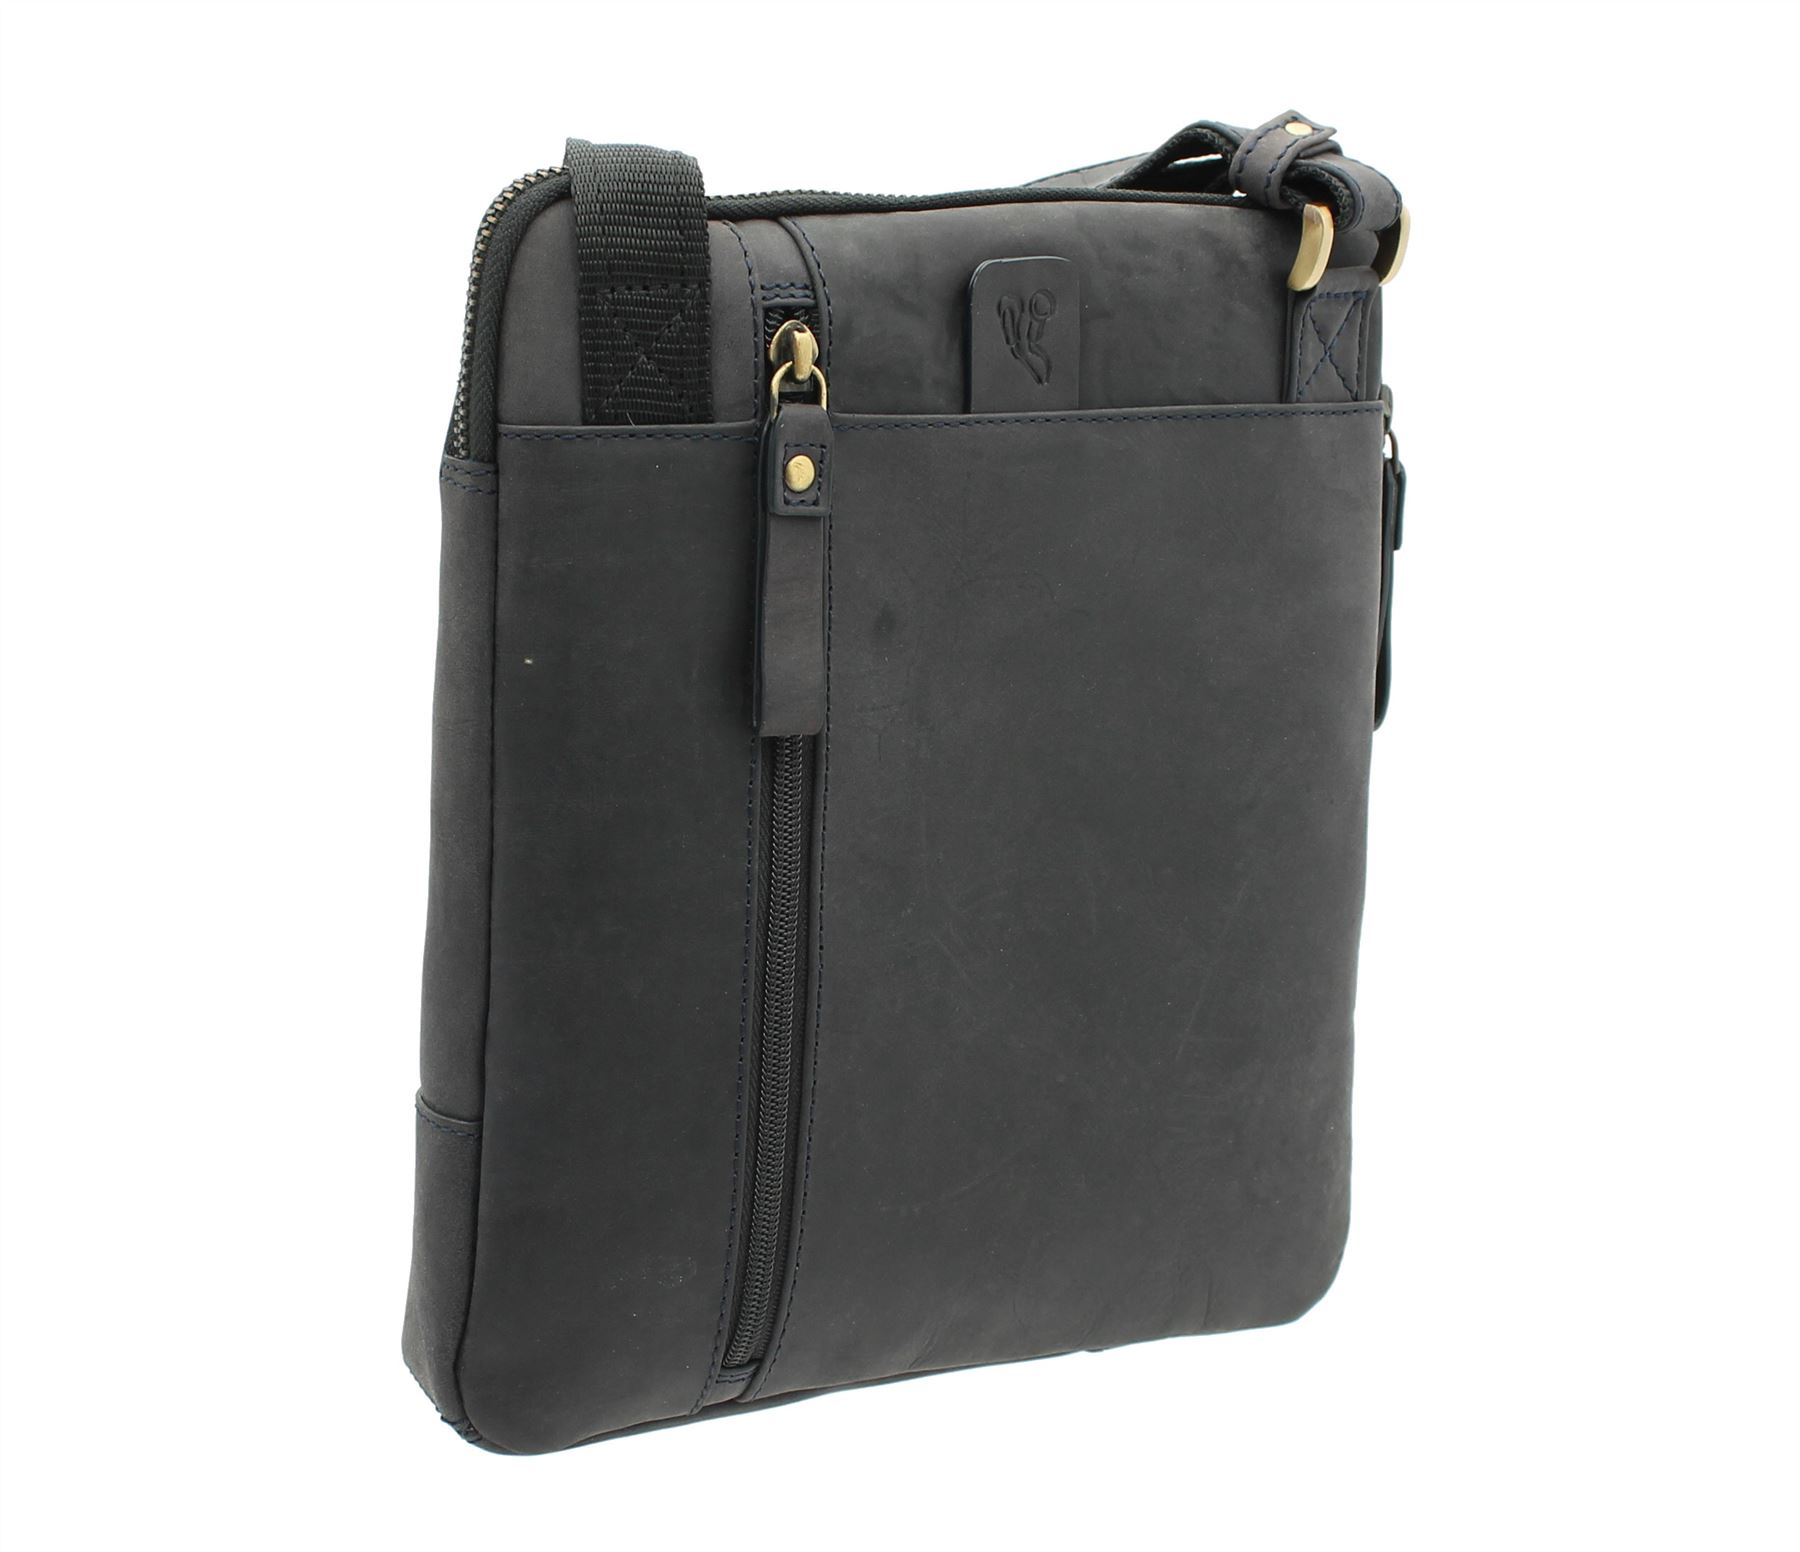 iPad Cross Body Messenger Bag 15056 Visconti ROY Oiled Leather Tablet